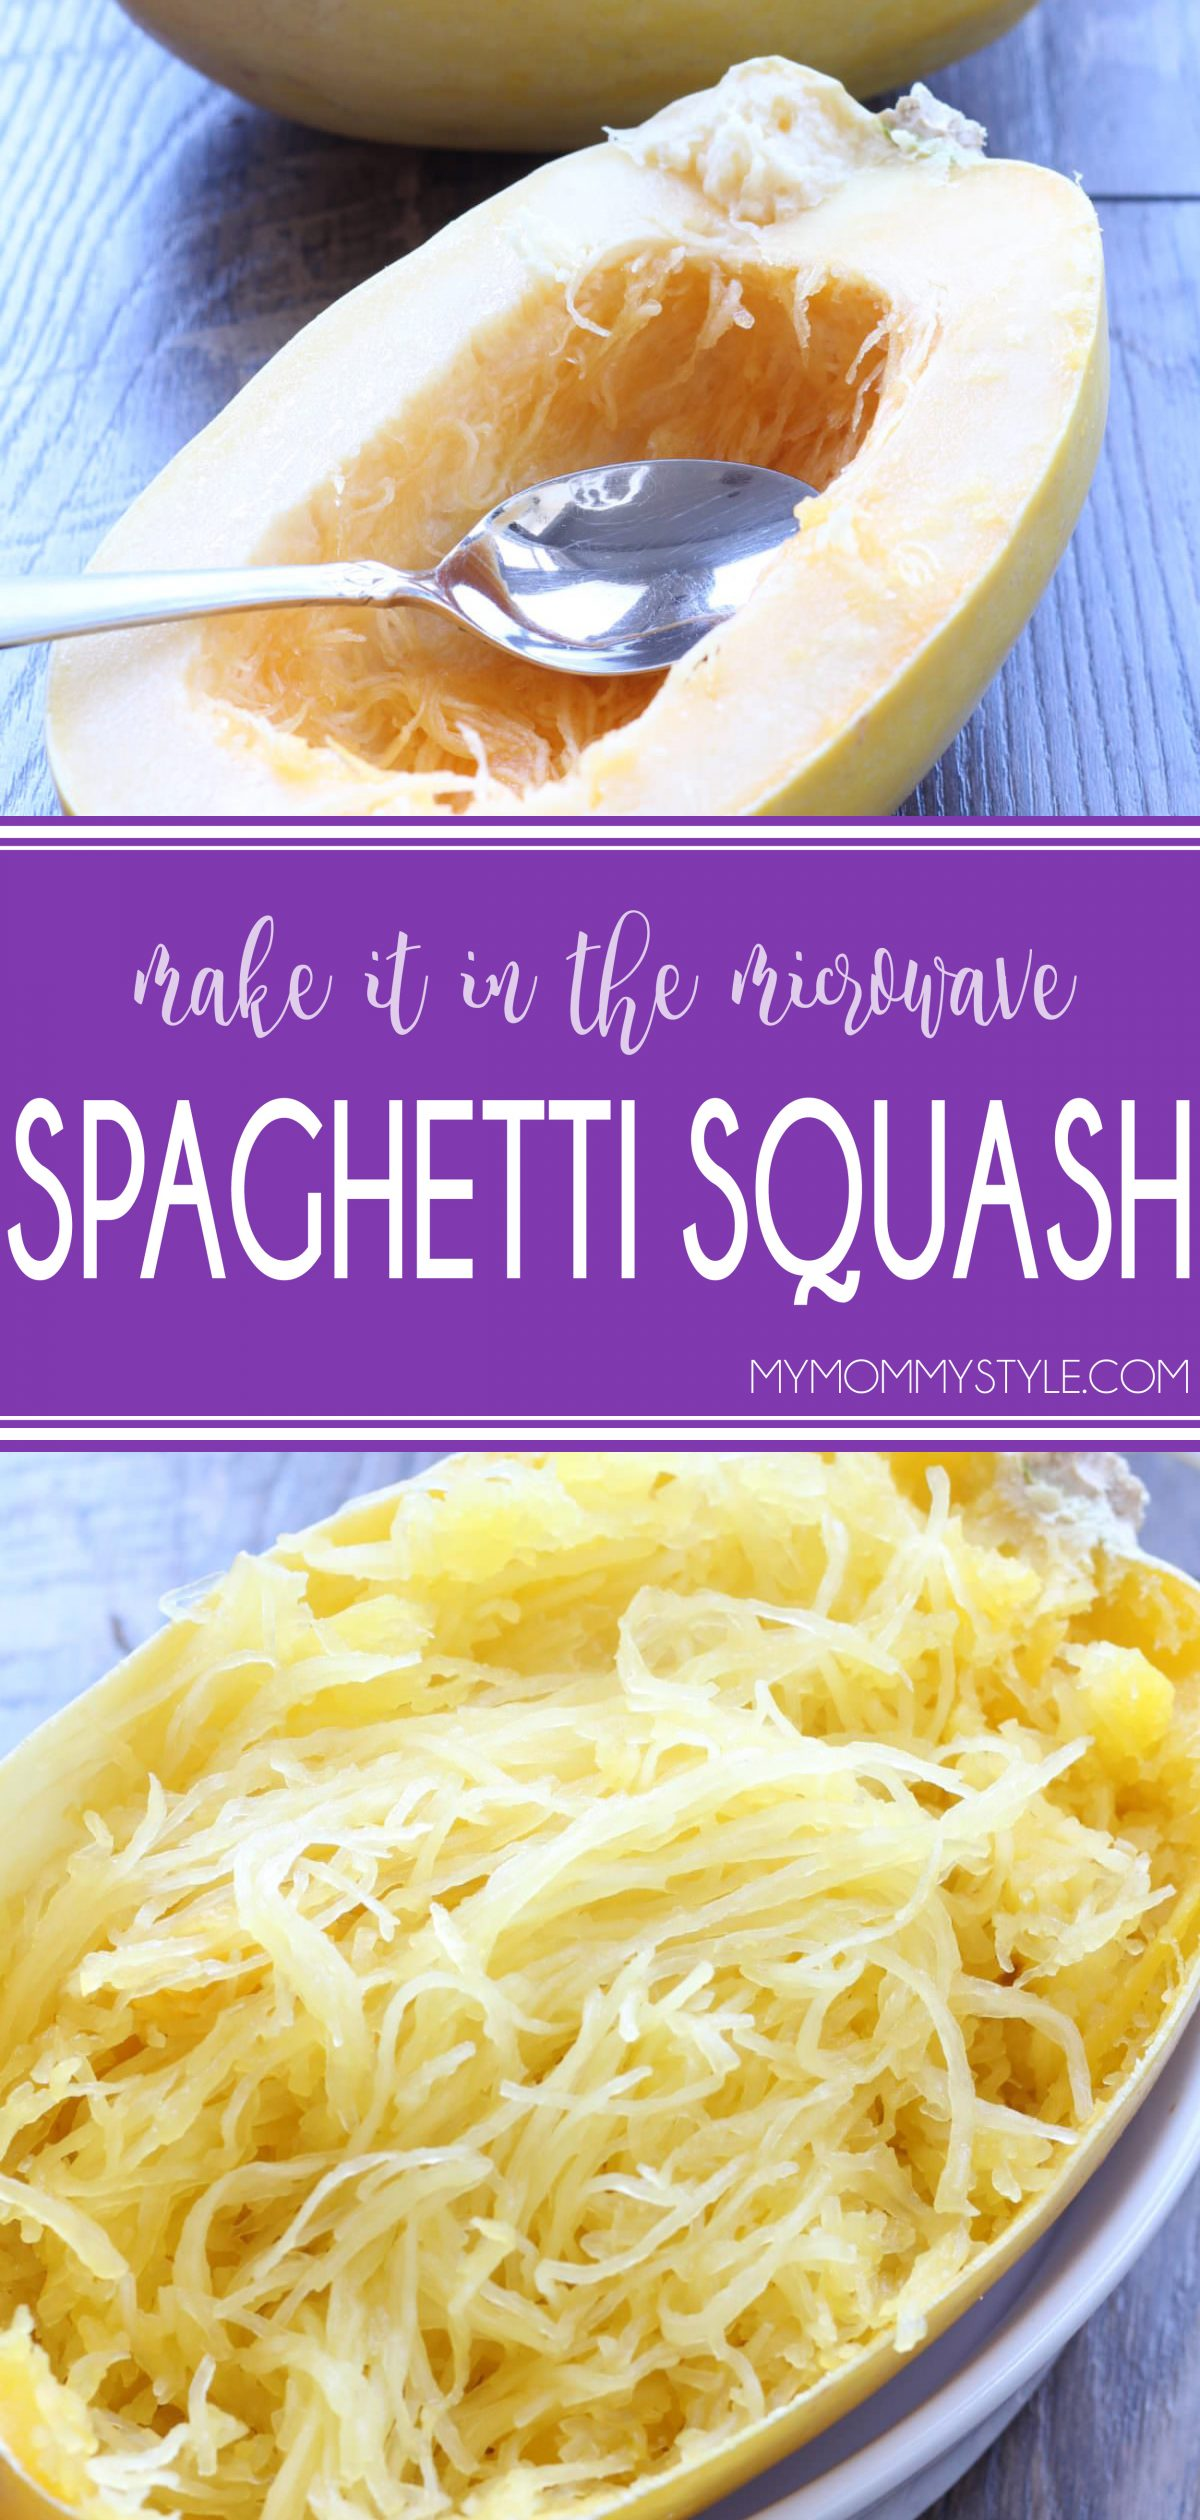 Make tender, healthy spaghetti squash quickly in the microwave. via @mymommystyle